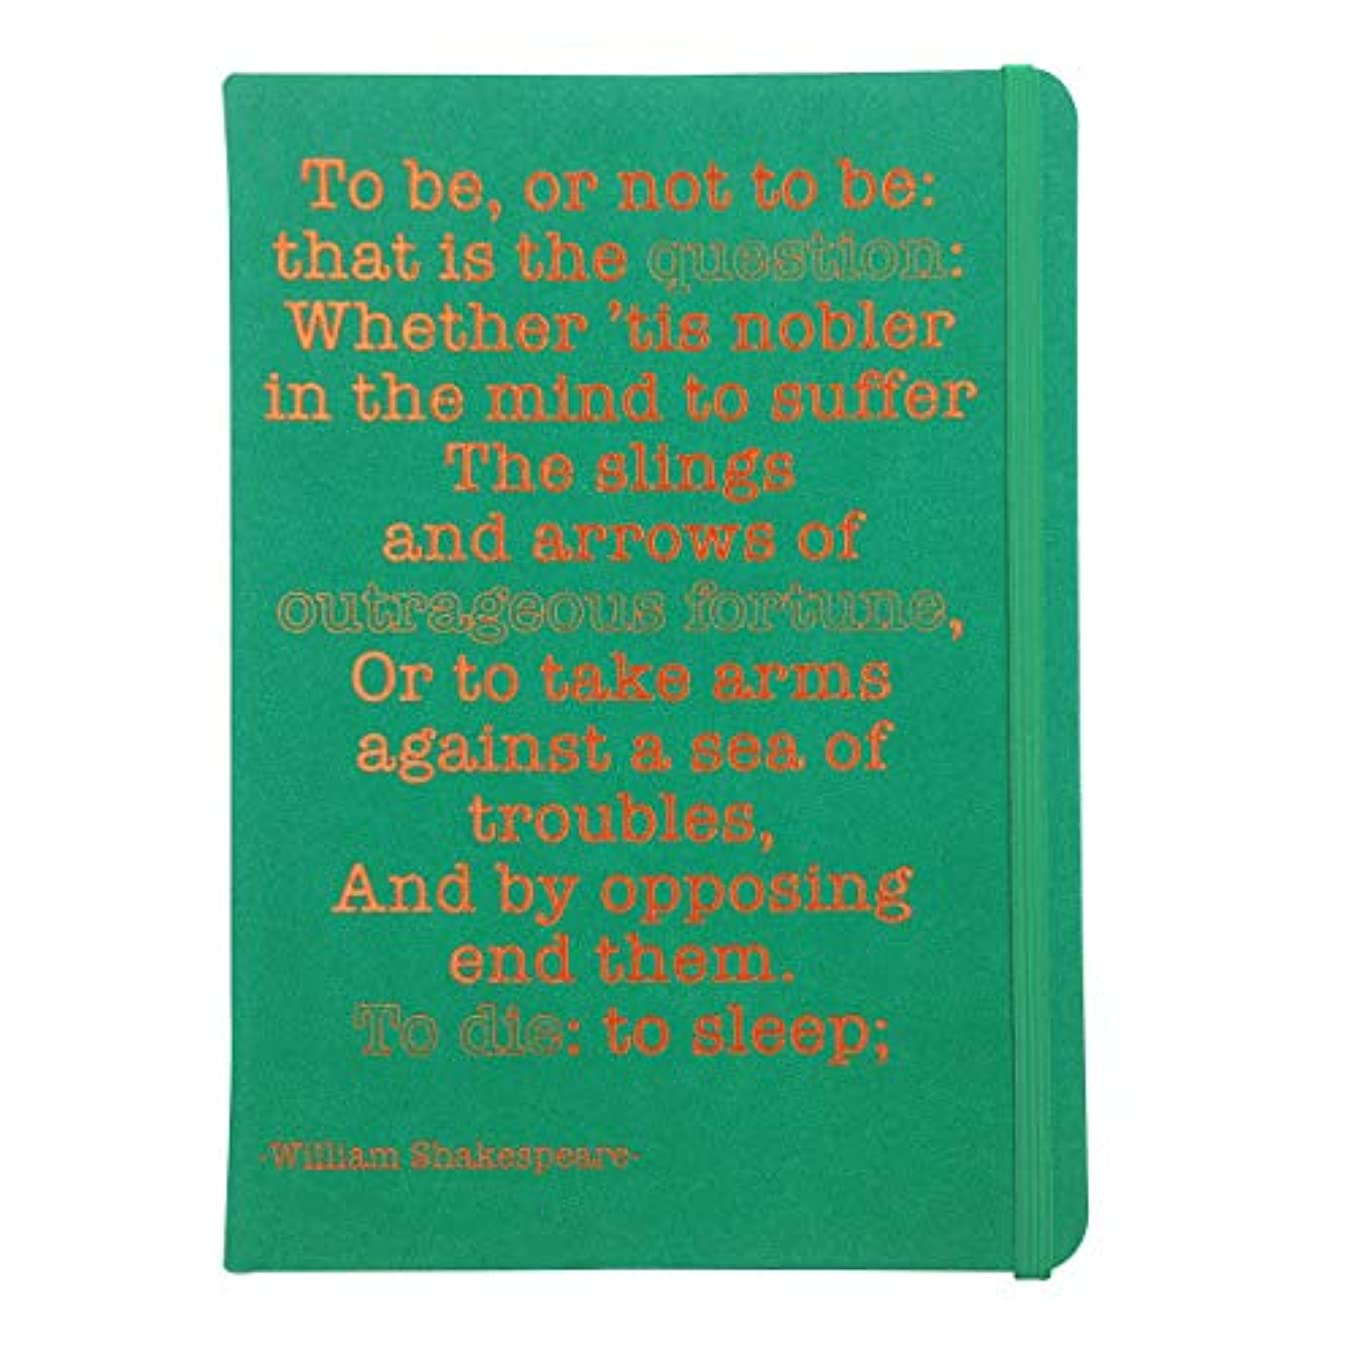 Robert Frederick - A5 Journal for Success - William Shakespeare - Green Cover